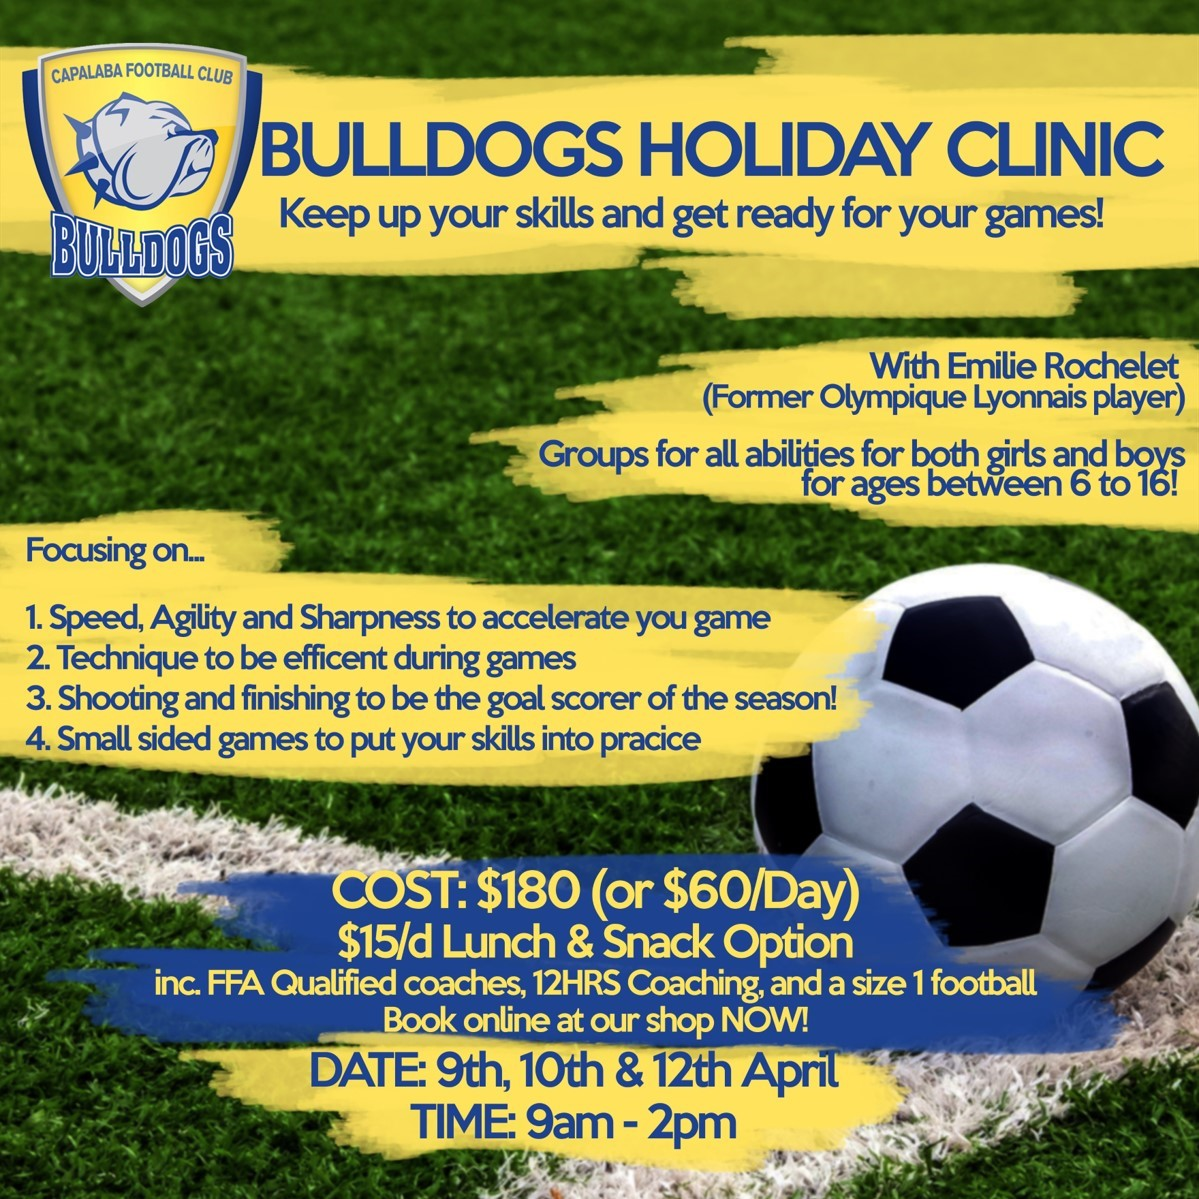 Bulldogs Holiday Clinic for all ages! — Capalaba Bulldogs